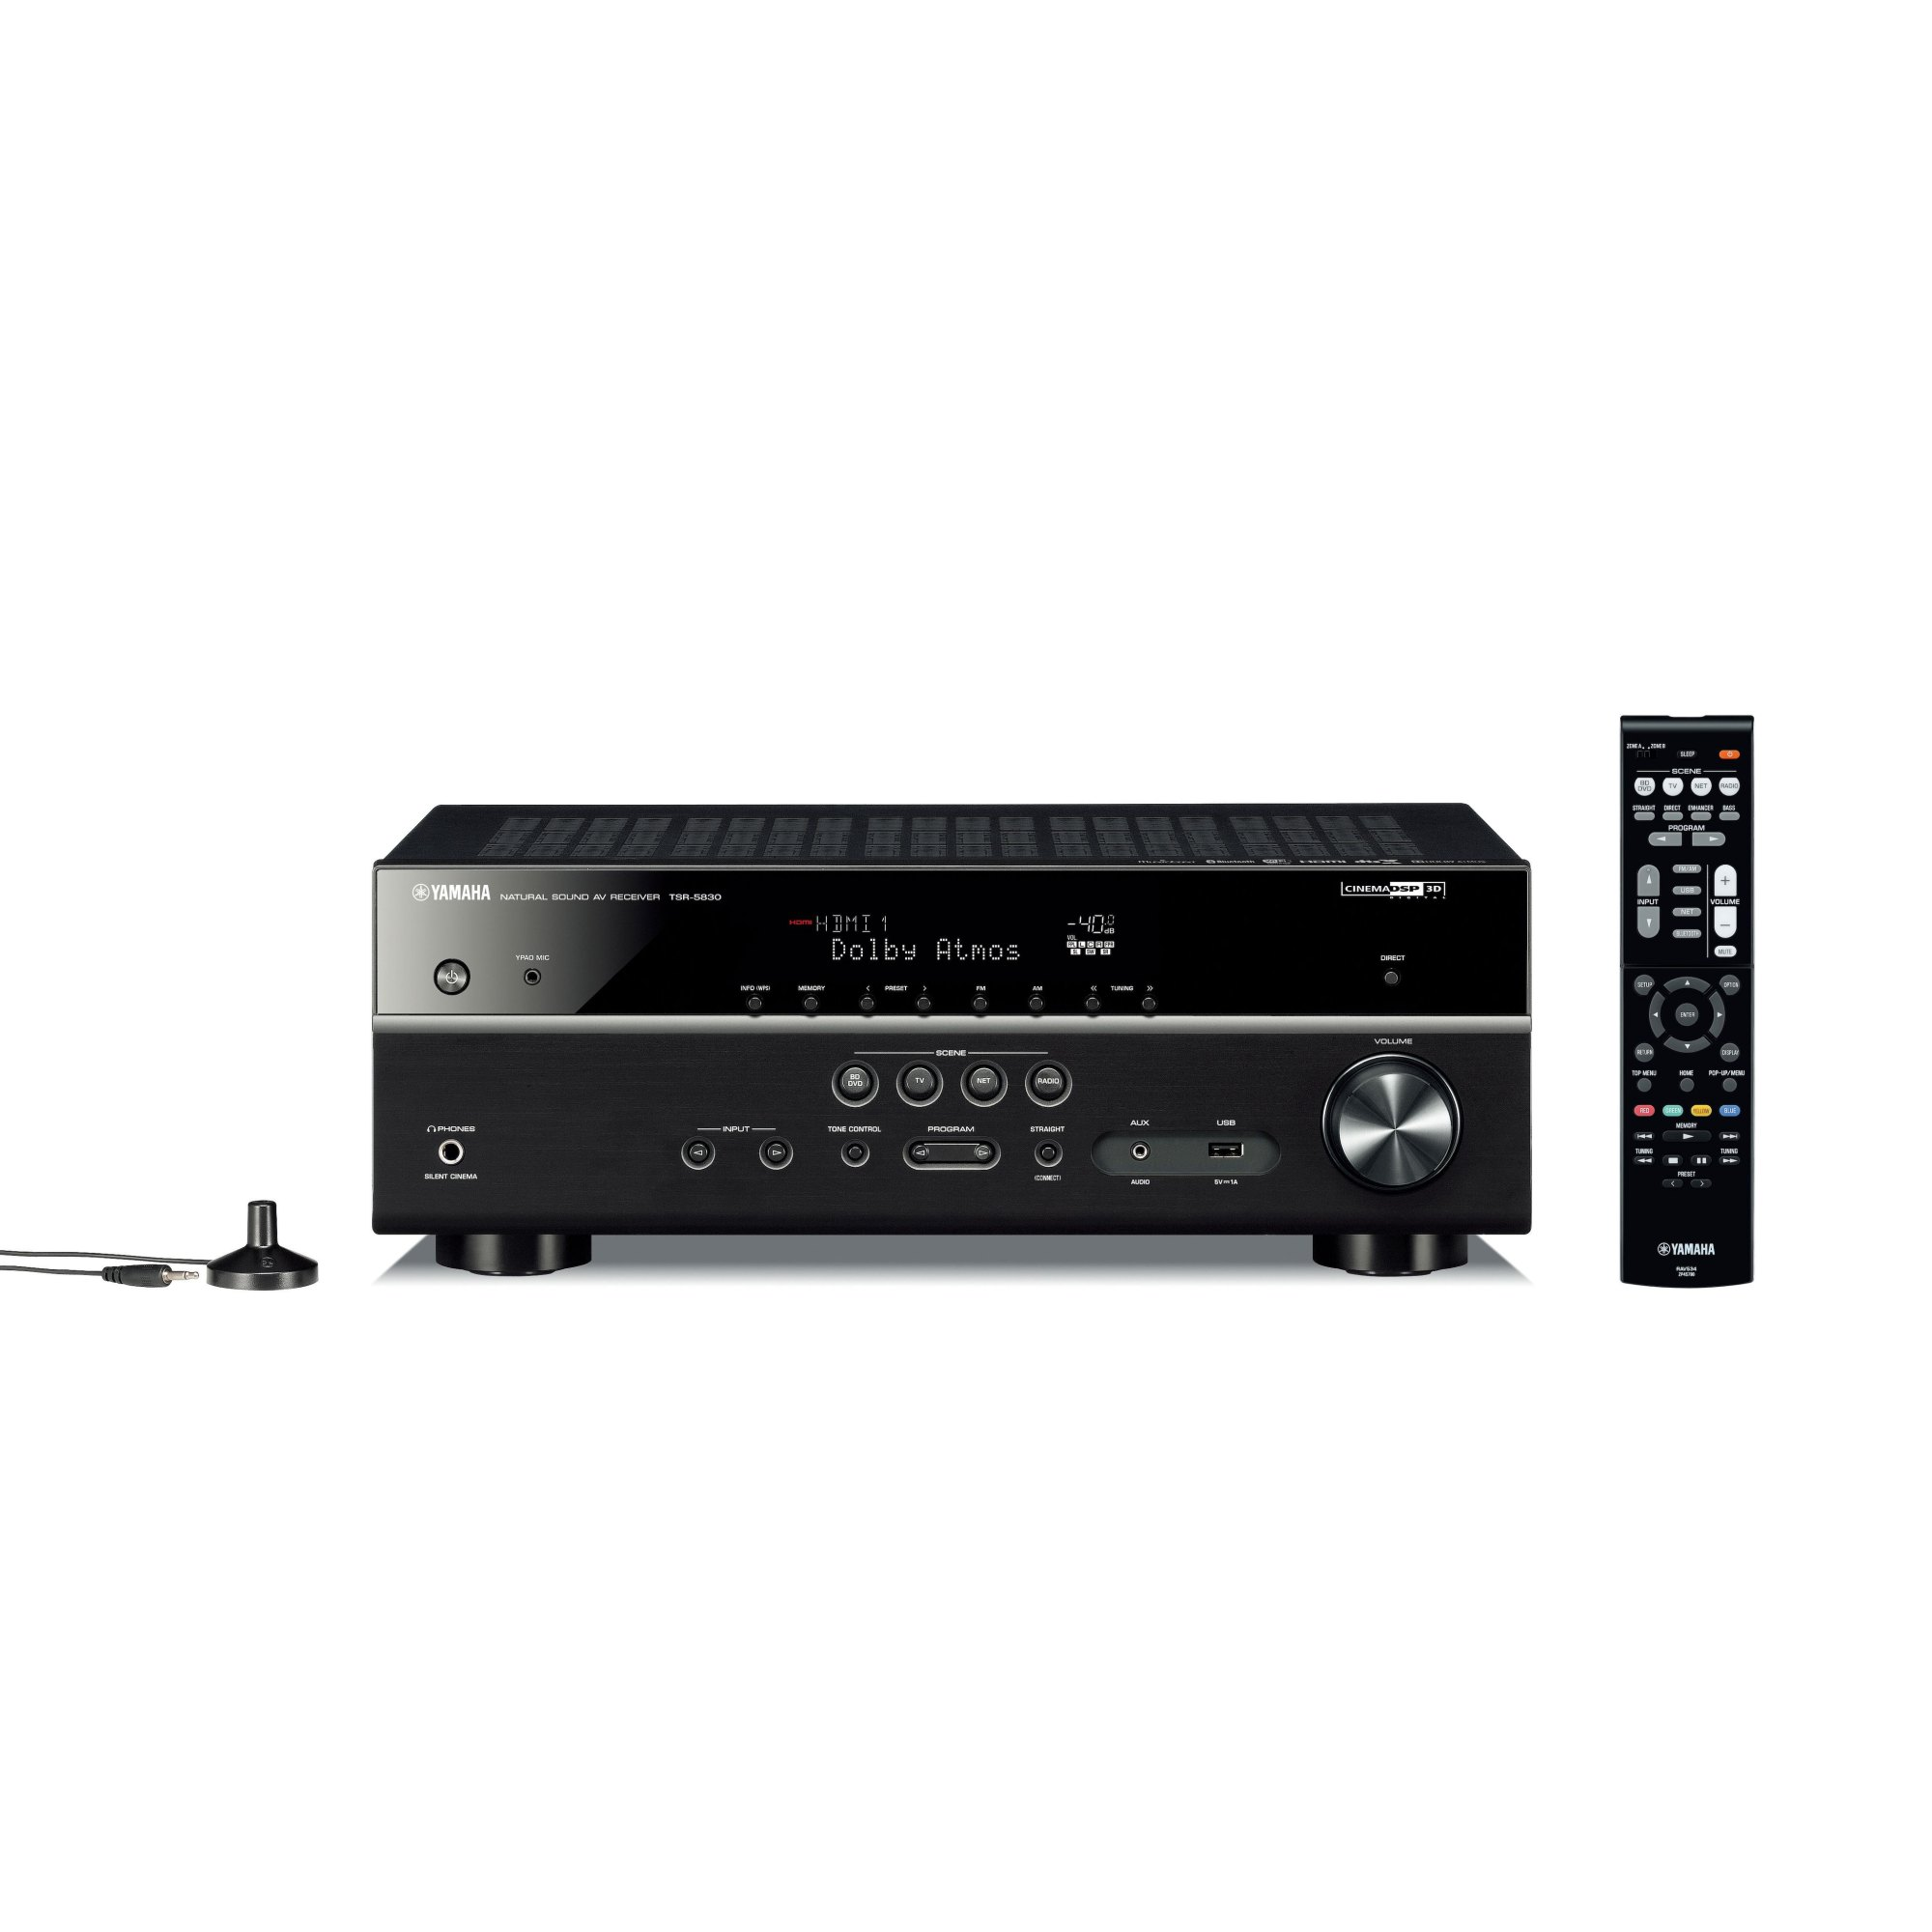 hight resolution of tsr 5830 features av receivers audio visual products yamaha united states